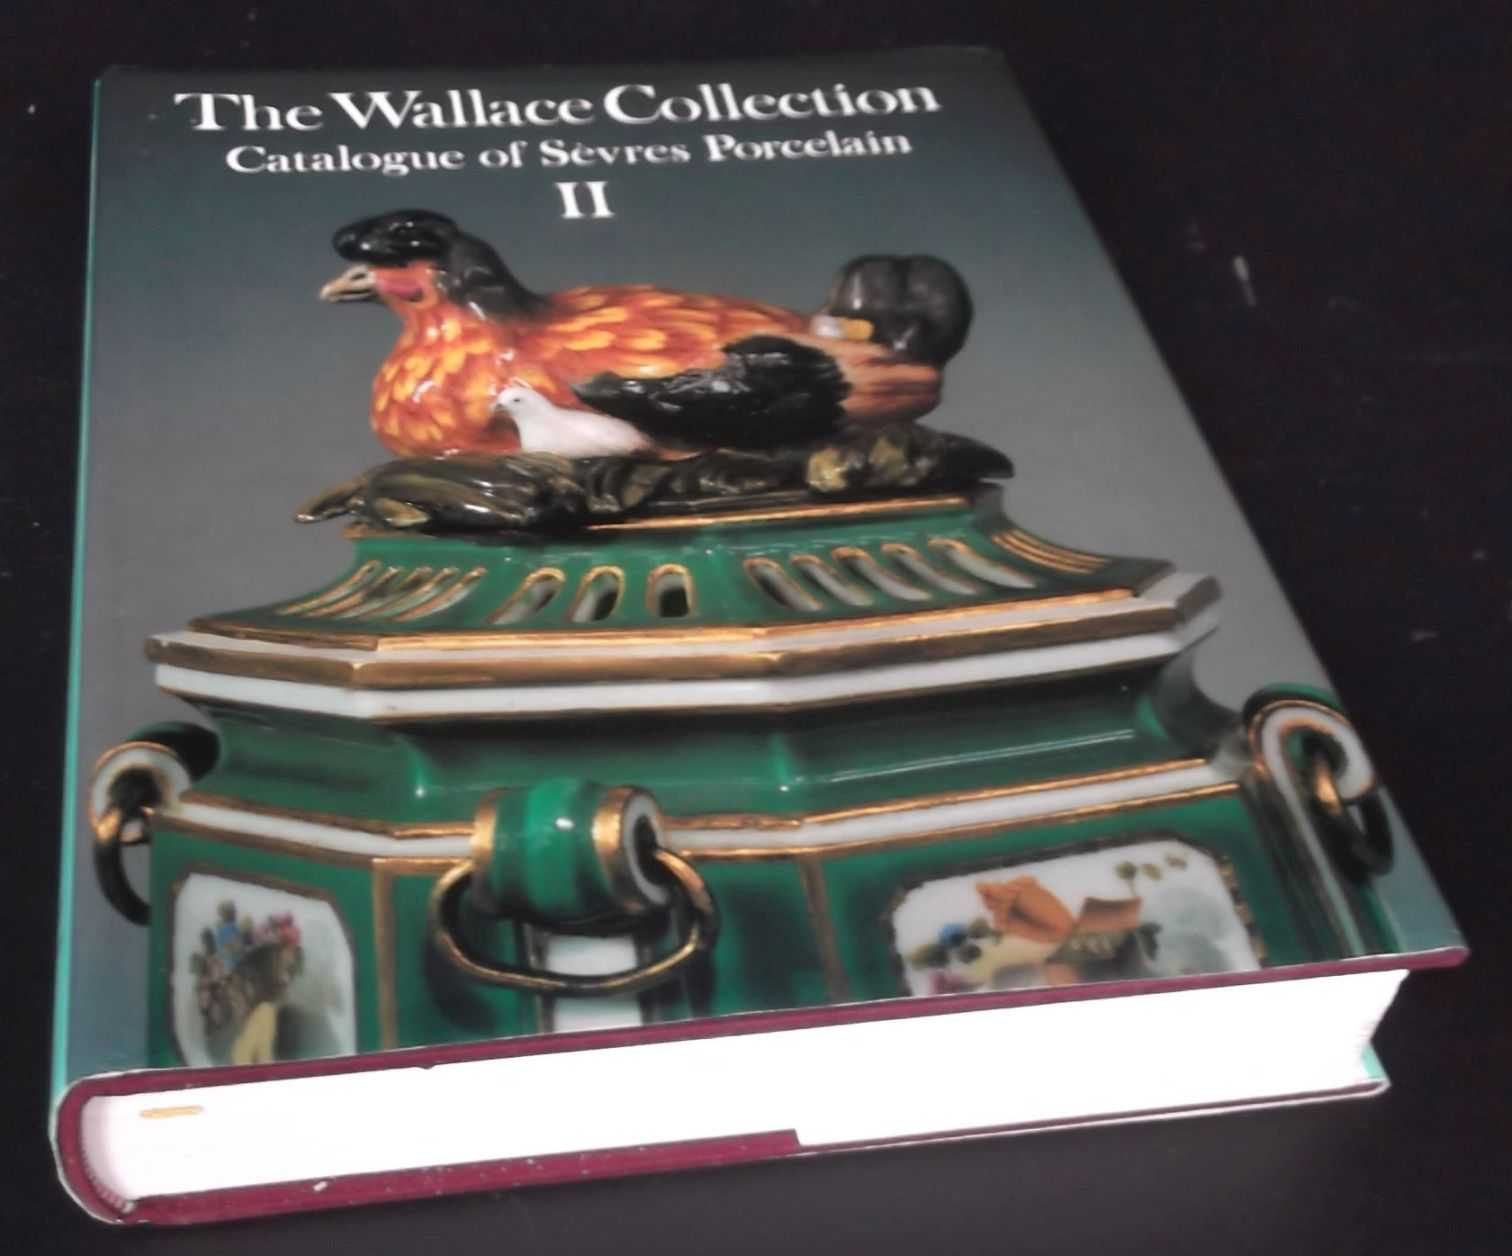 ROSALIND SAVILL - The Wallace collection: Catalogue of Sevres Porcelain, Vol. 2. Tea Wares, Useful Wares, Biscuit Figures, Plaques.